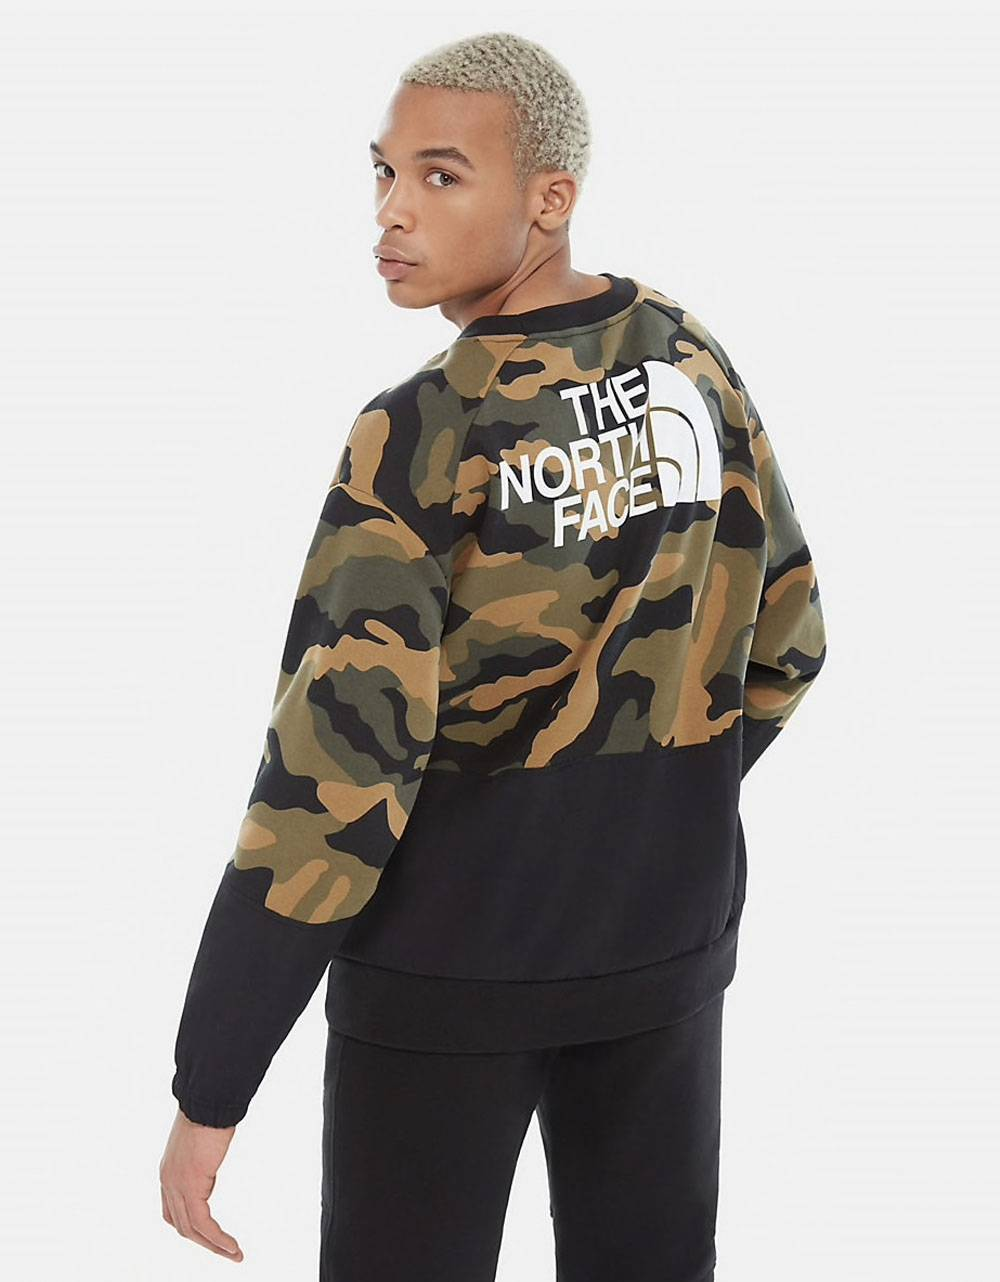 THE NORTH FACE Graphic Crewneck sweater - Burnt Olive Green Camo THE NORTH FACE Sweater 85,00€